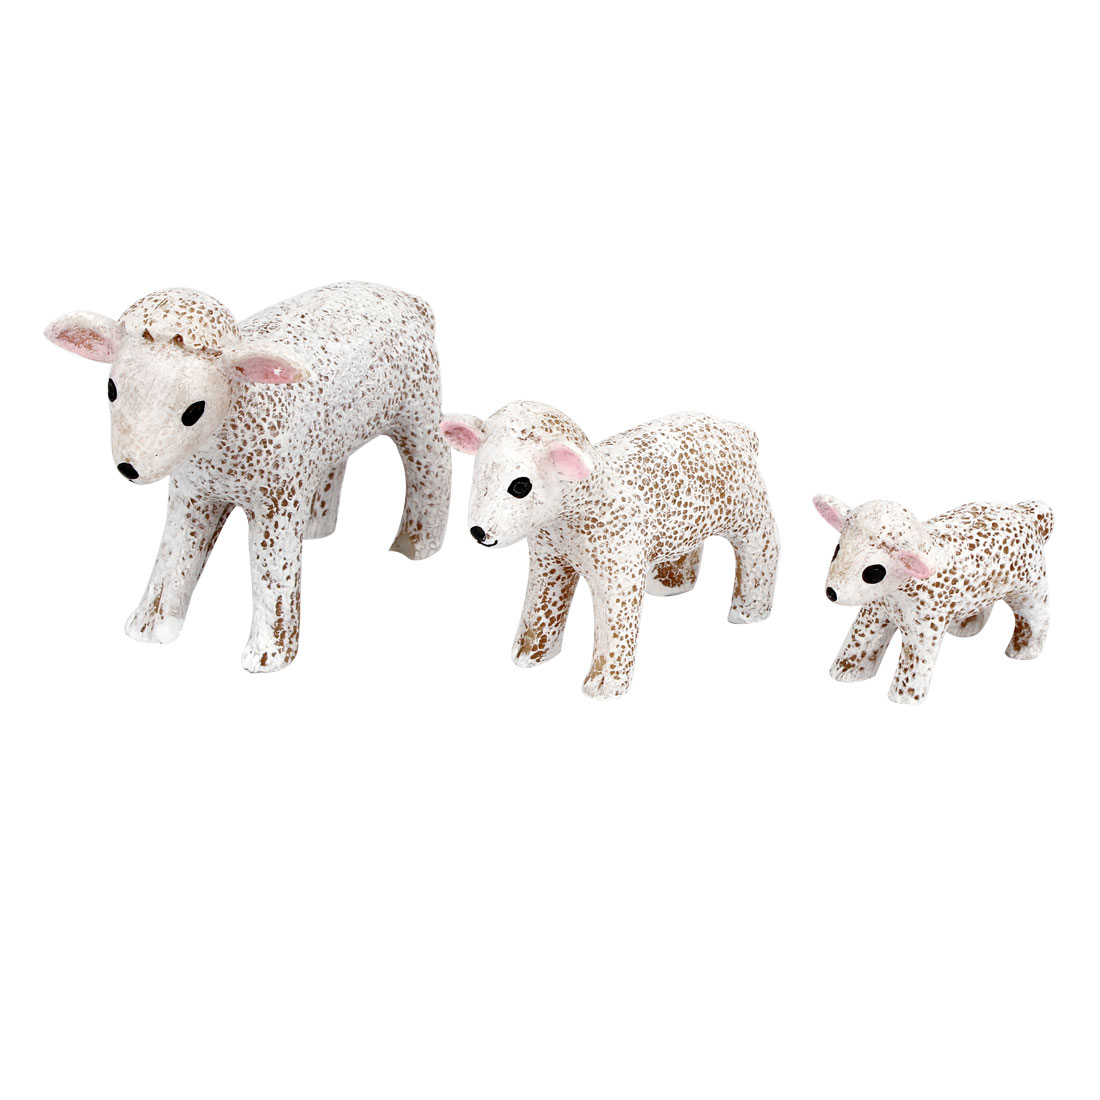 3 in 1 Tabletop Adorn Craft Sheep Decoration White